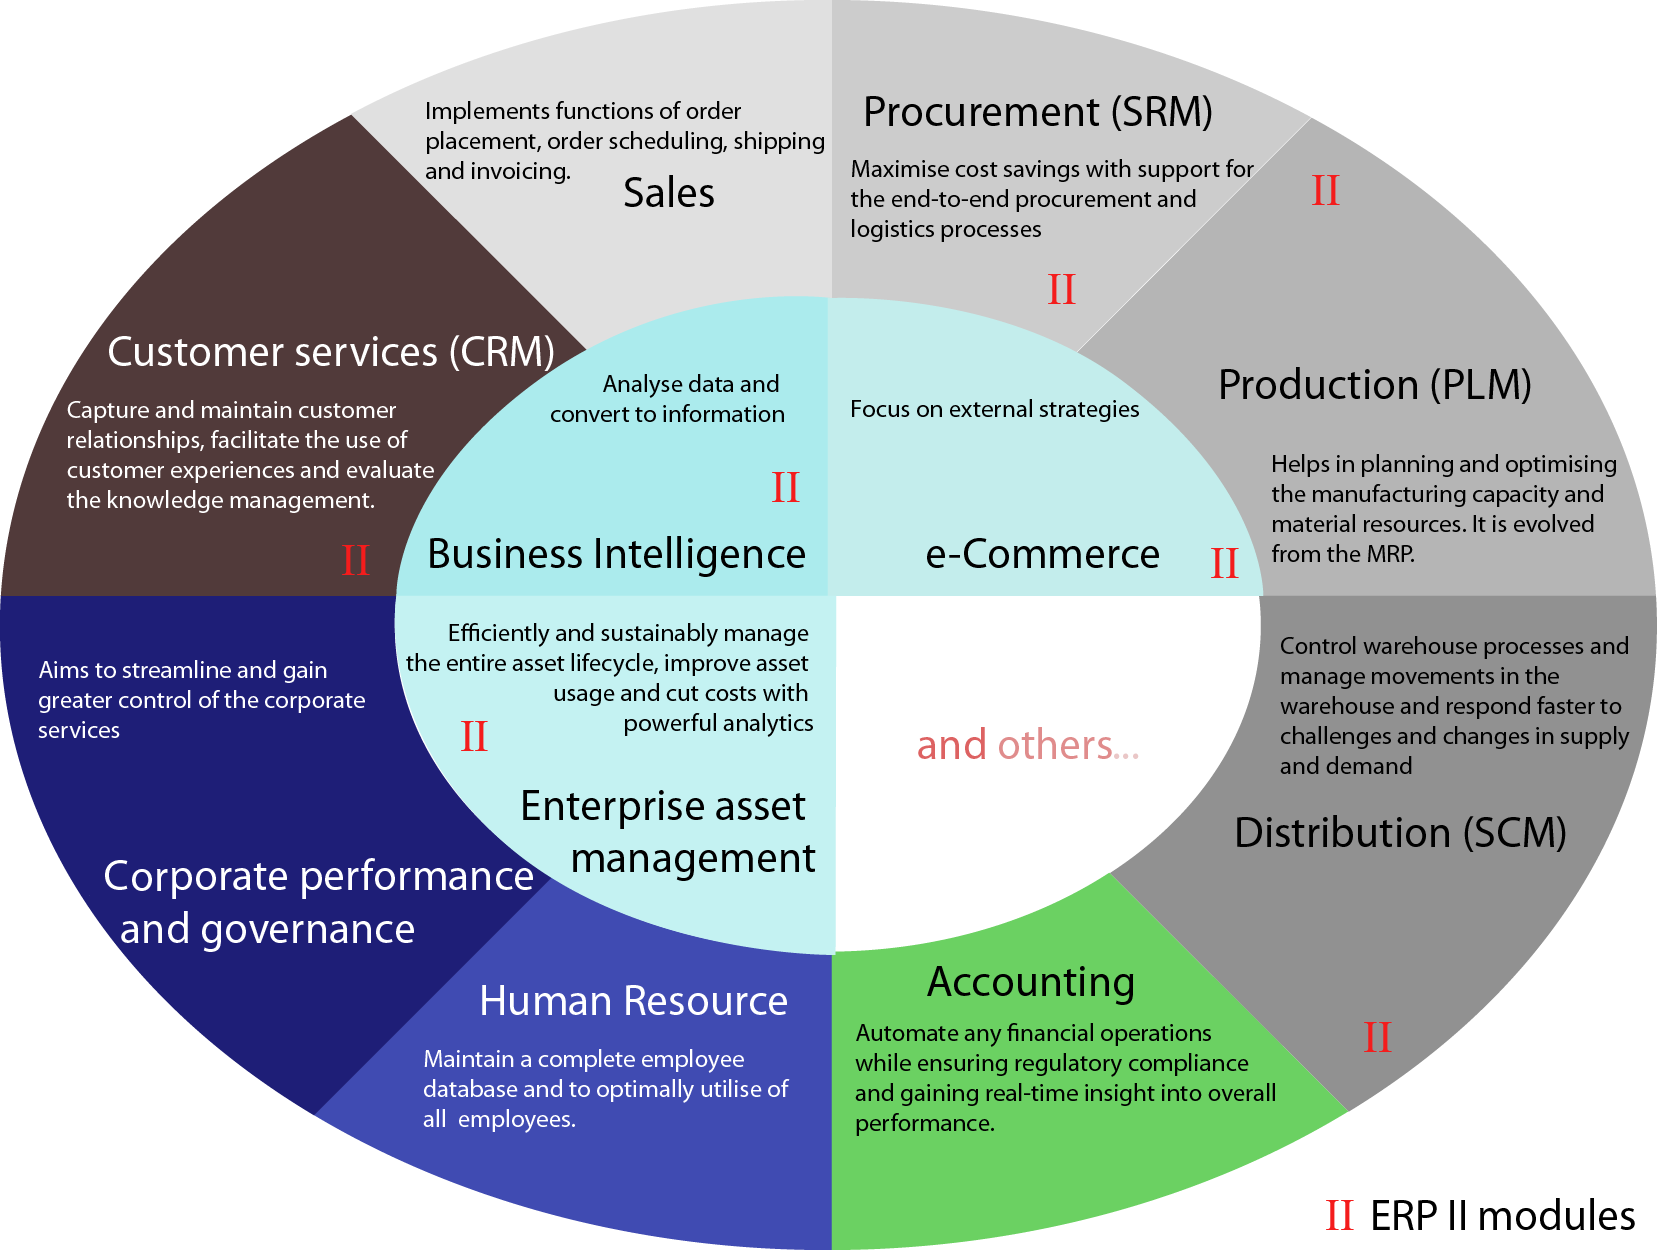 a literary analysis of enterprise ersource planning erp Integrate and automate processes across your large enterprise with the industry standard for on-premise enterprise resource planning software: sap erp.